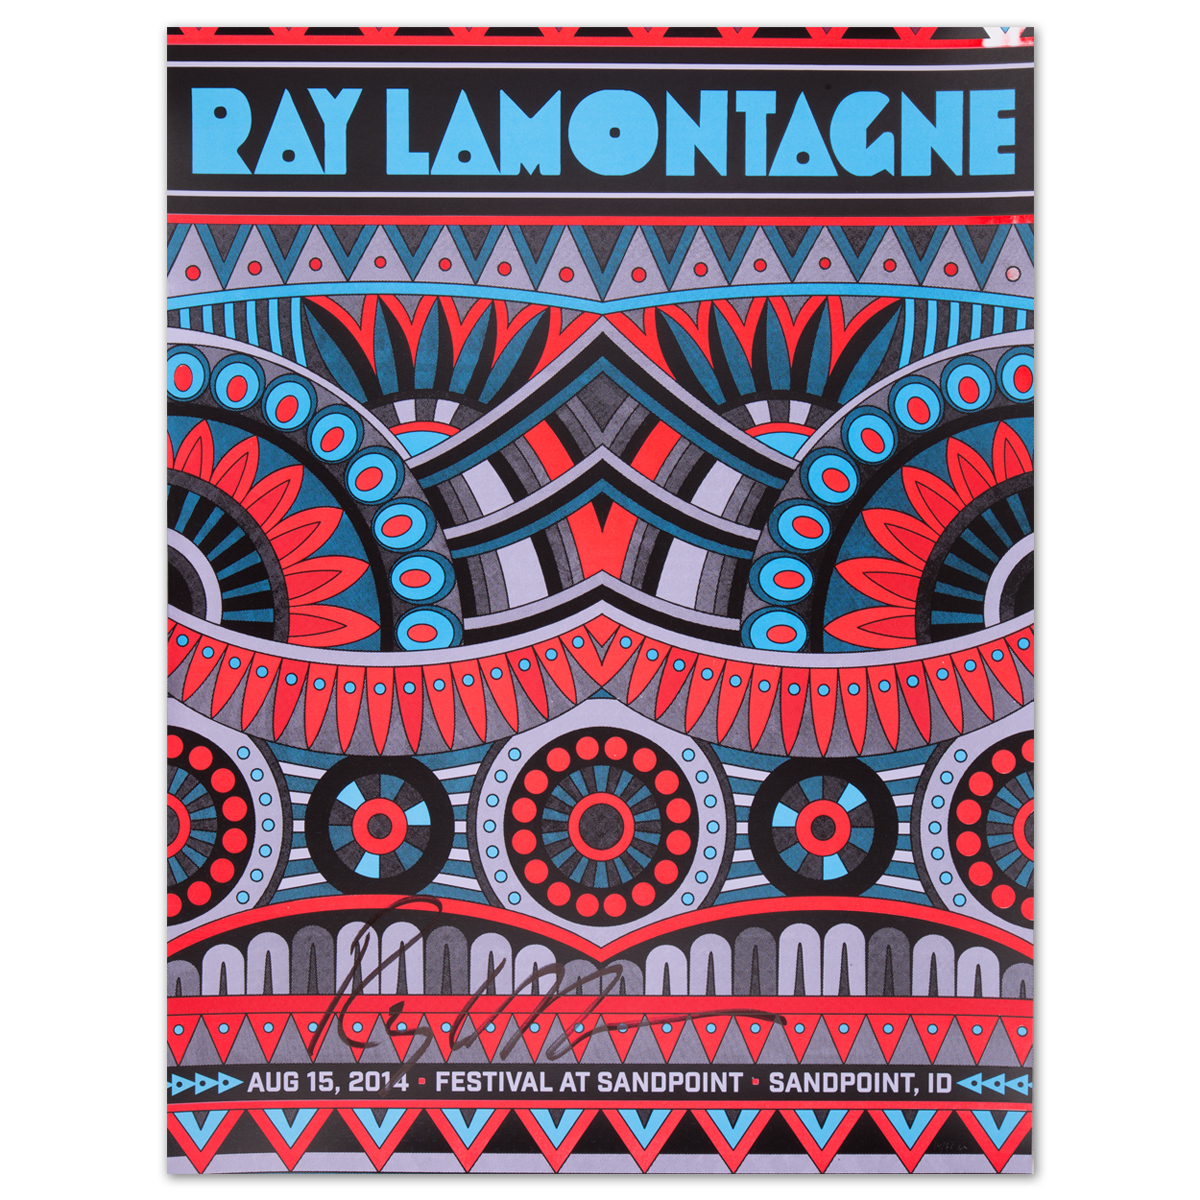 Ray LaMontagne 2014 Sandpoint, ID Event Poster (signed)